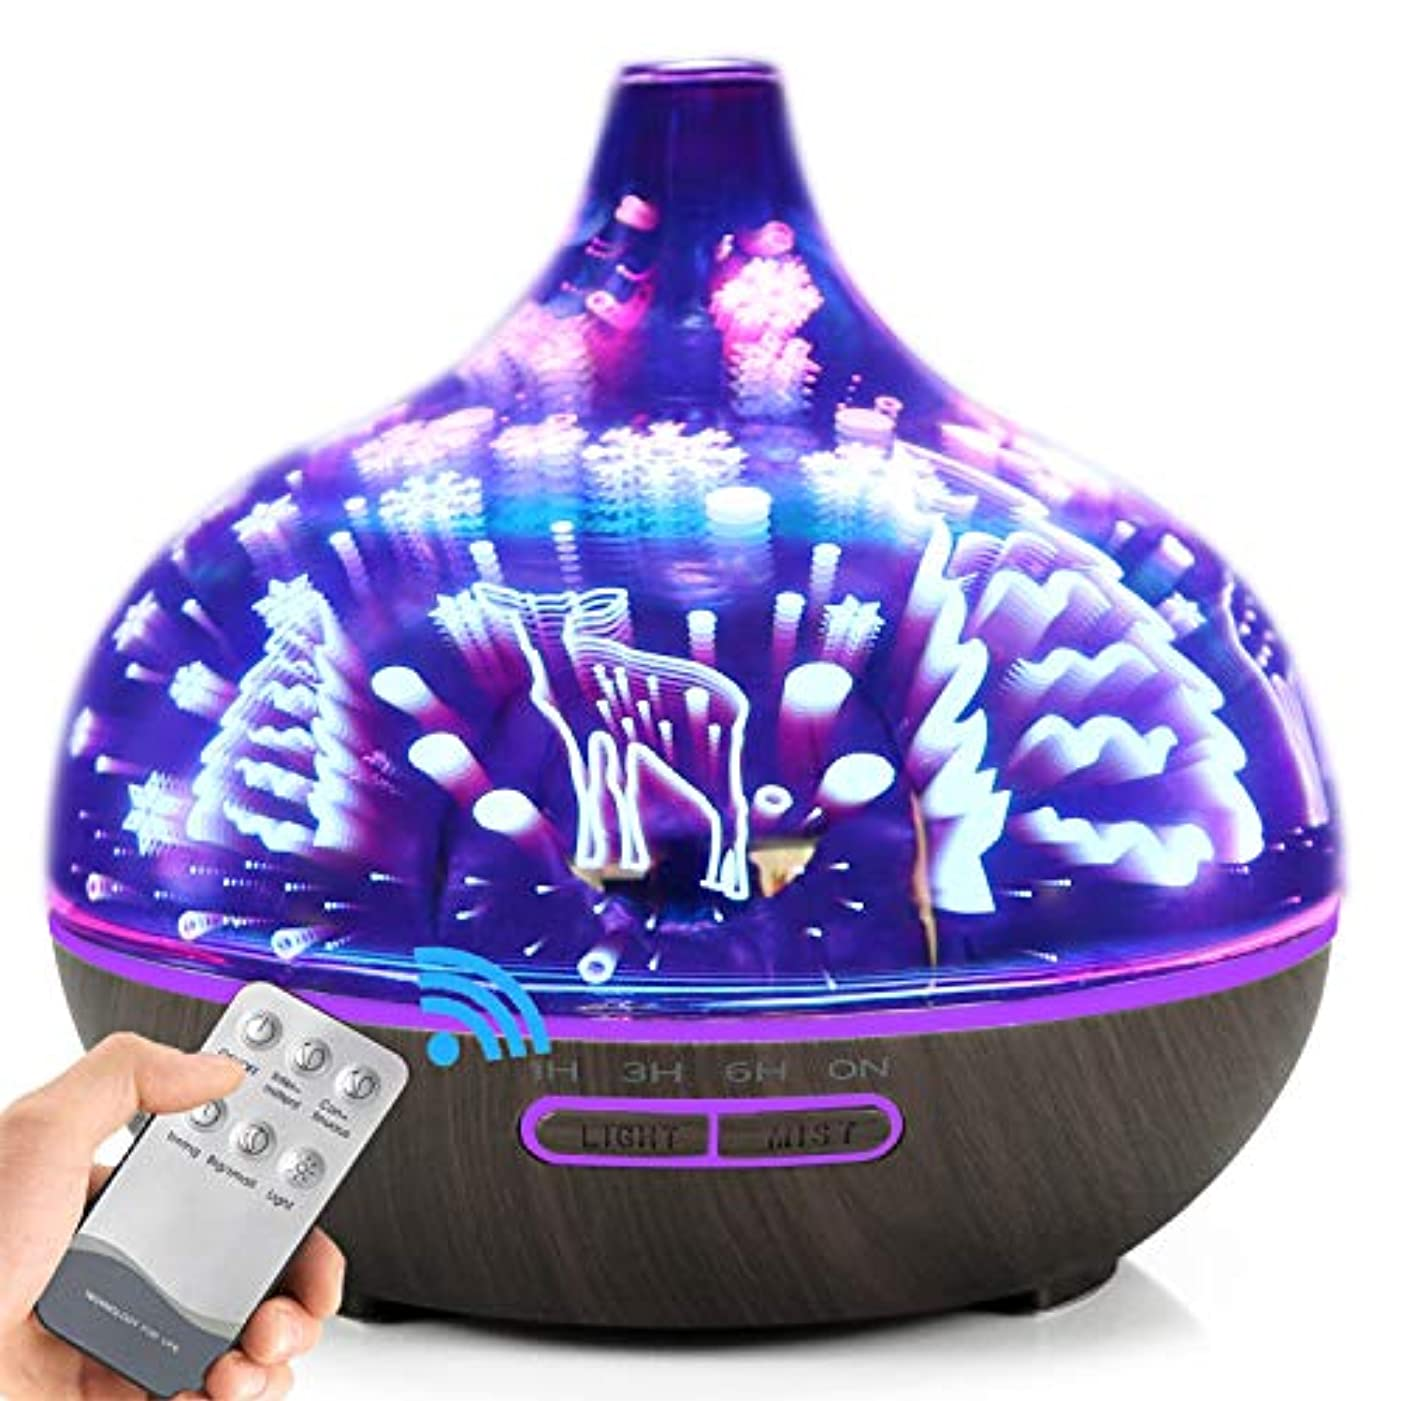 芸術懸念学校教育AXNYLHY Essential Oil Diffuser,400ml Aroma Diffuser 3D Colorful LED Night Light Glass humidifiers for Bedroom,...